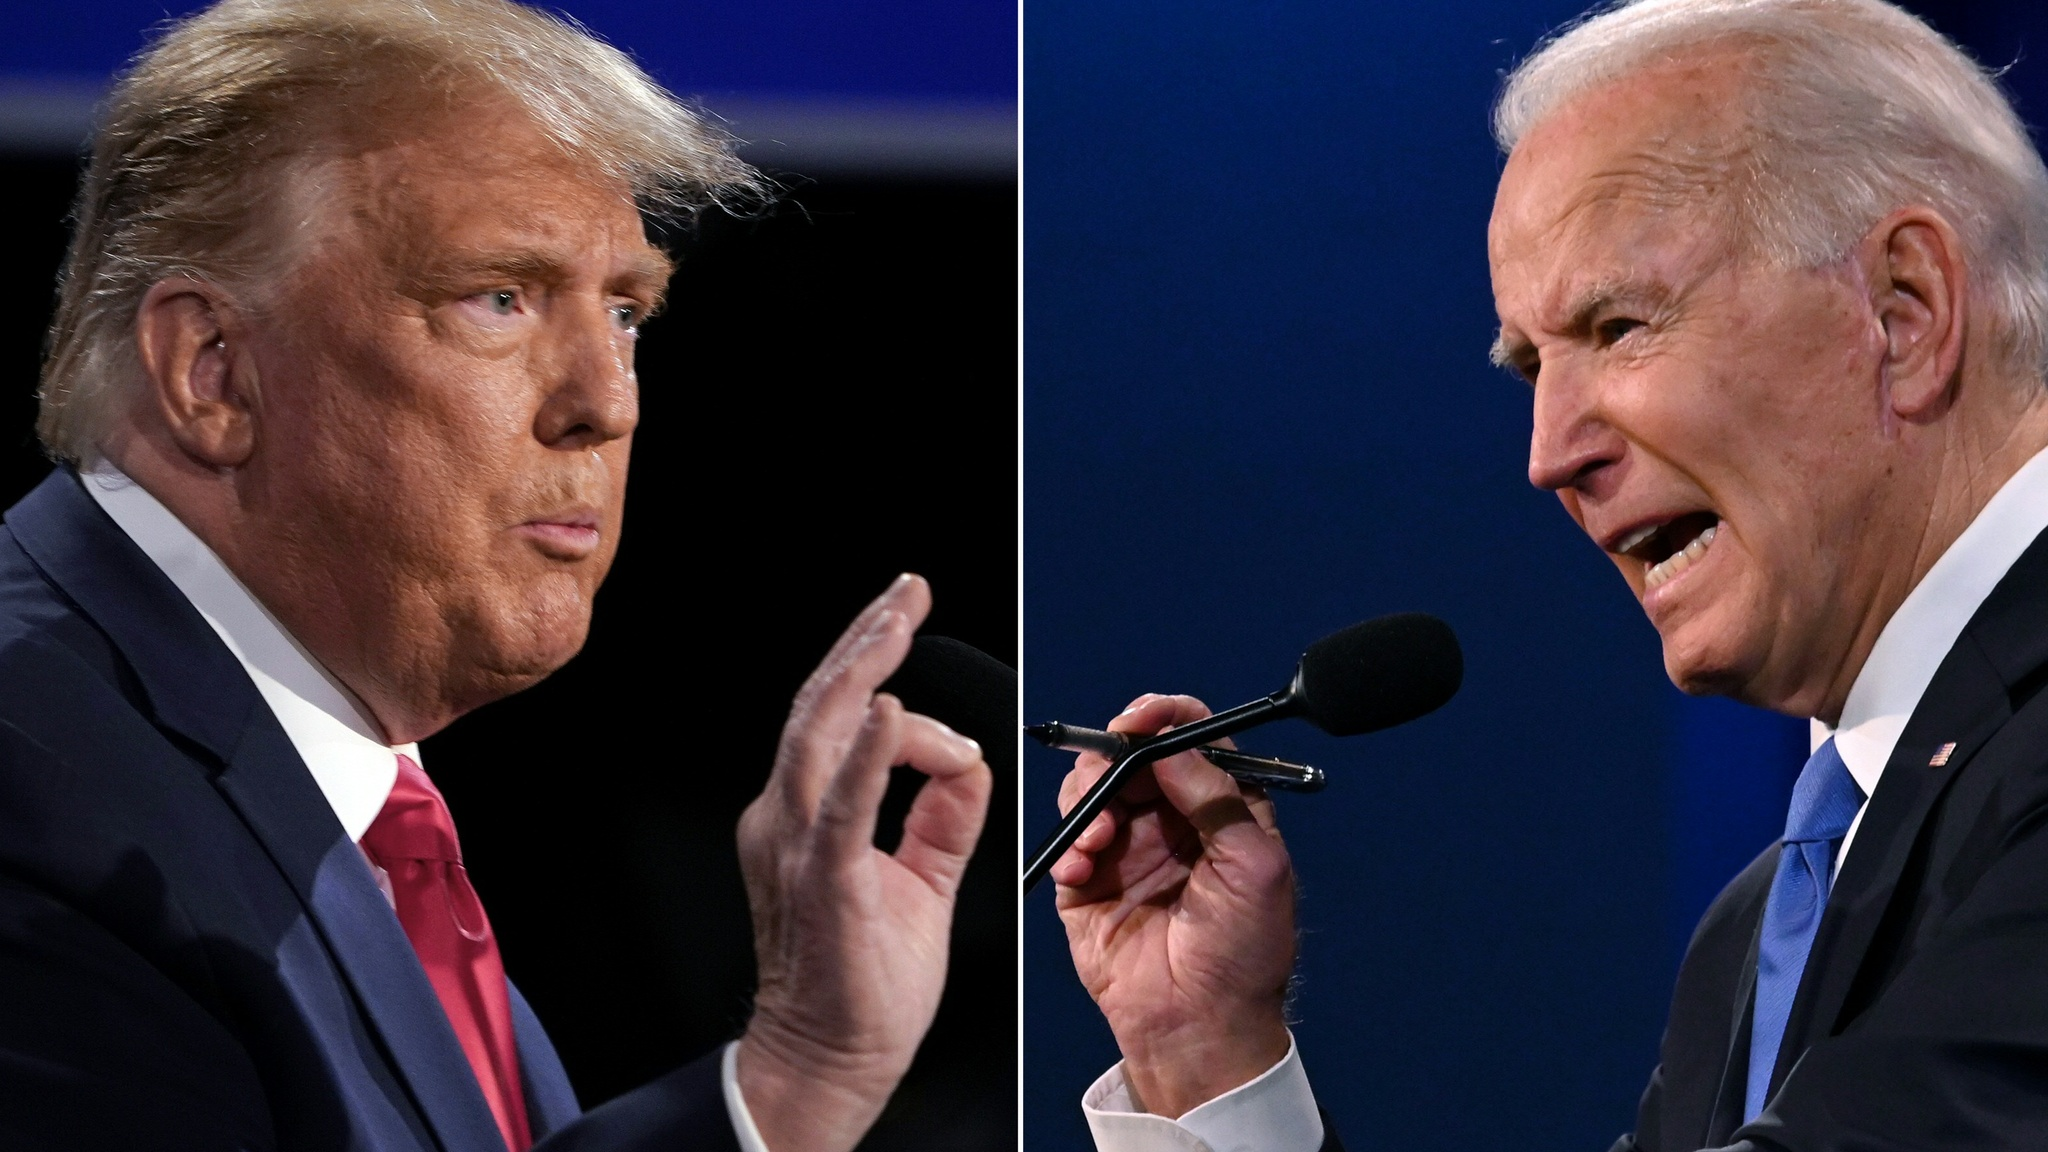 """John McCain Refers To Obama As """"that One"""" Duringdebate ferrfre GettyImages-1229228819_2048x1152"""